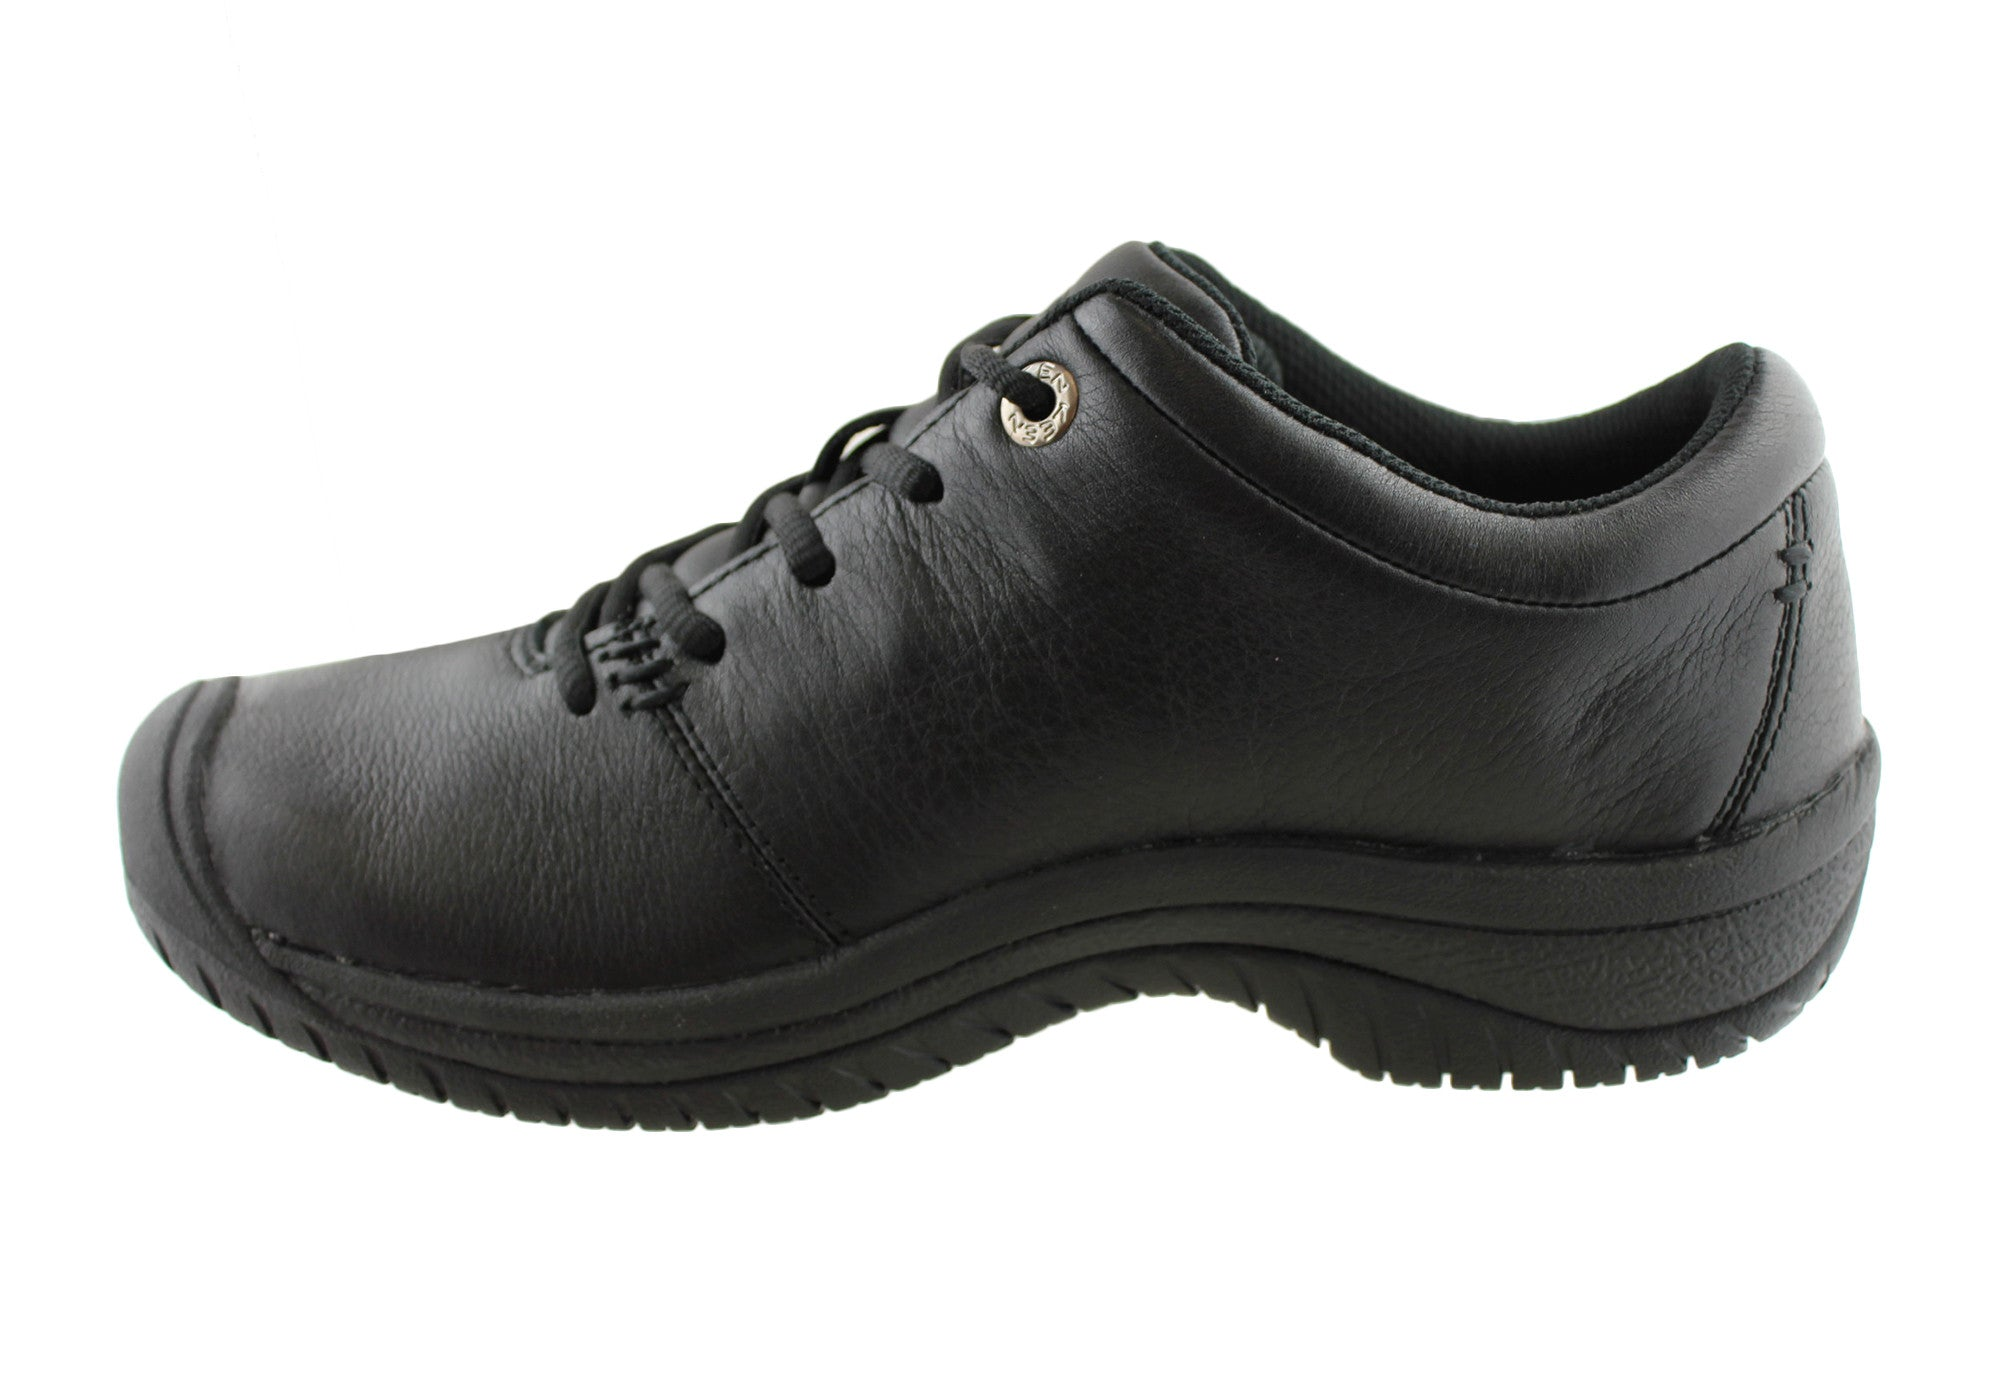 Keen PTC Oxford Womens Leather Lace Up Shoes